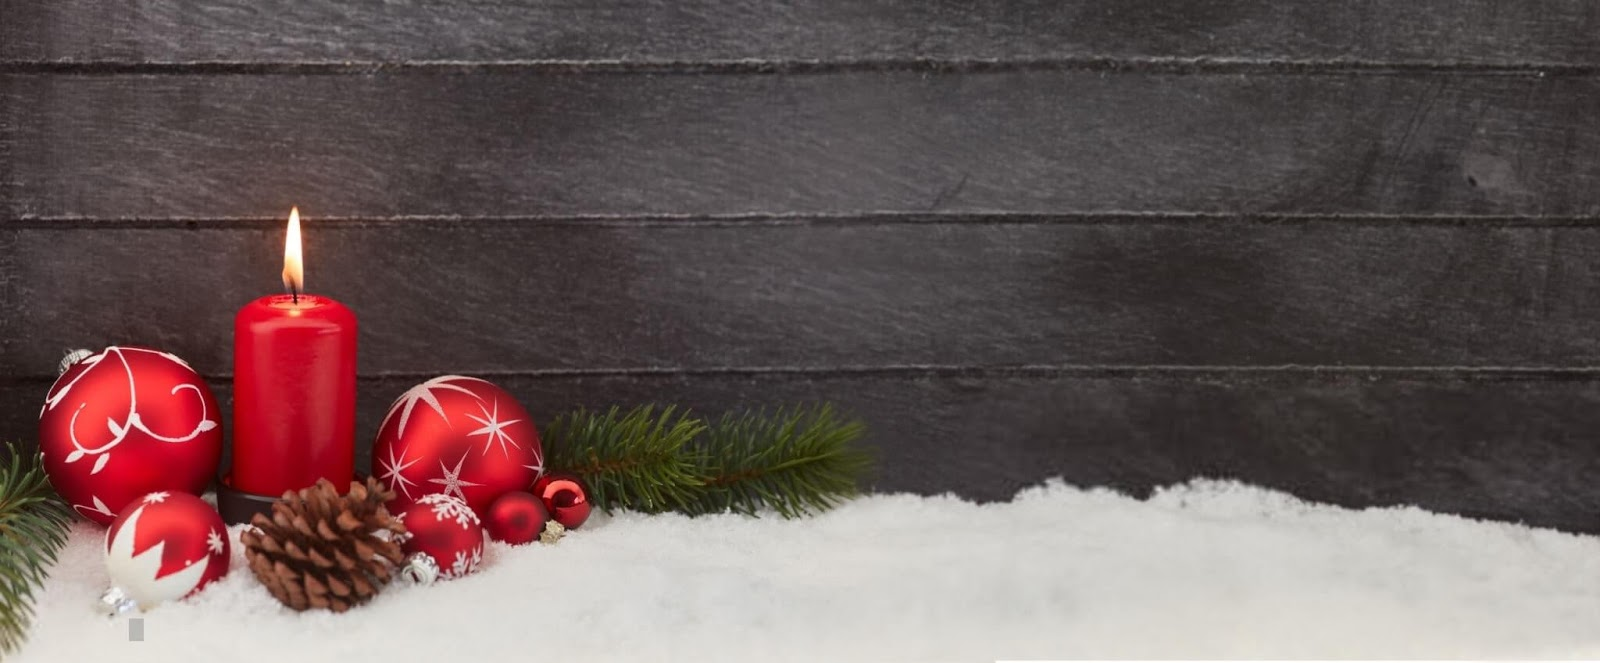 Christmas Background Images in HD